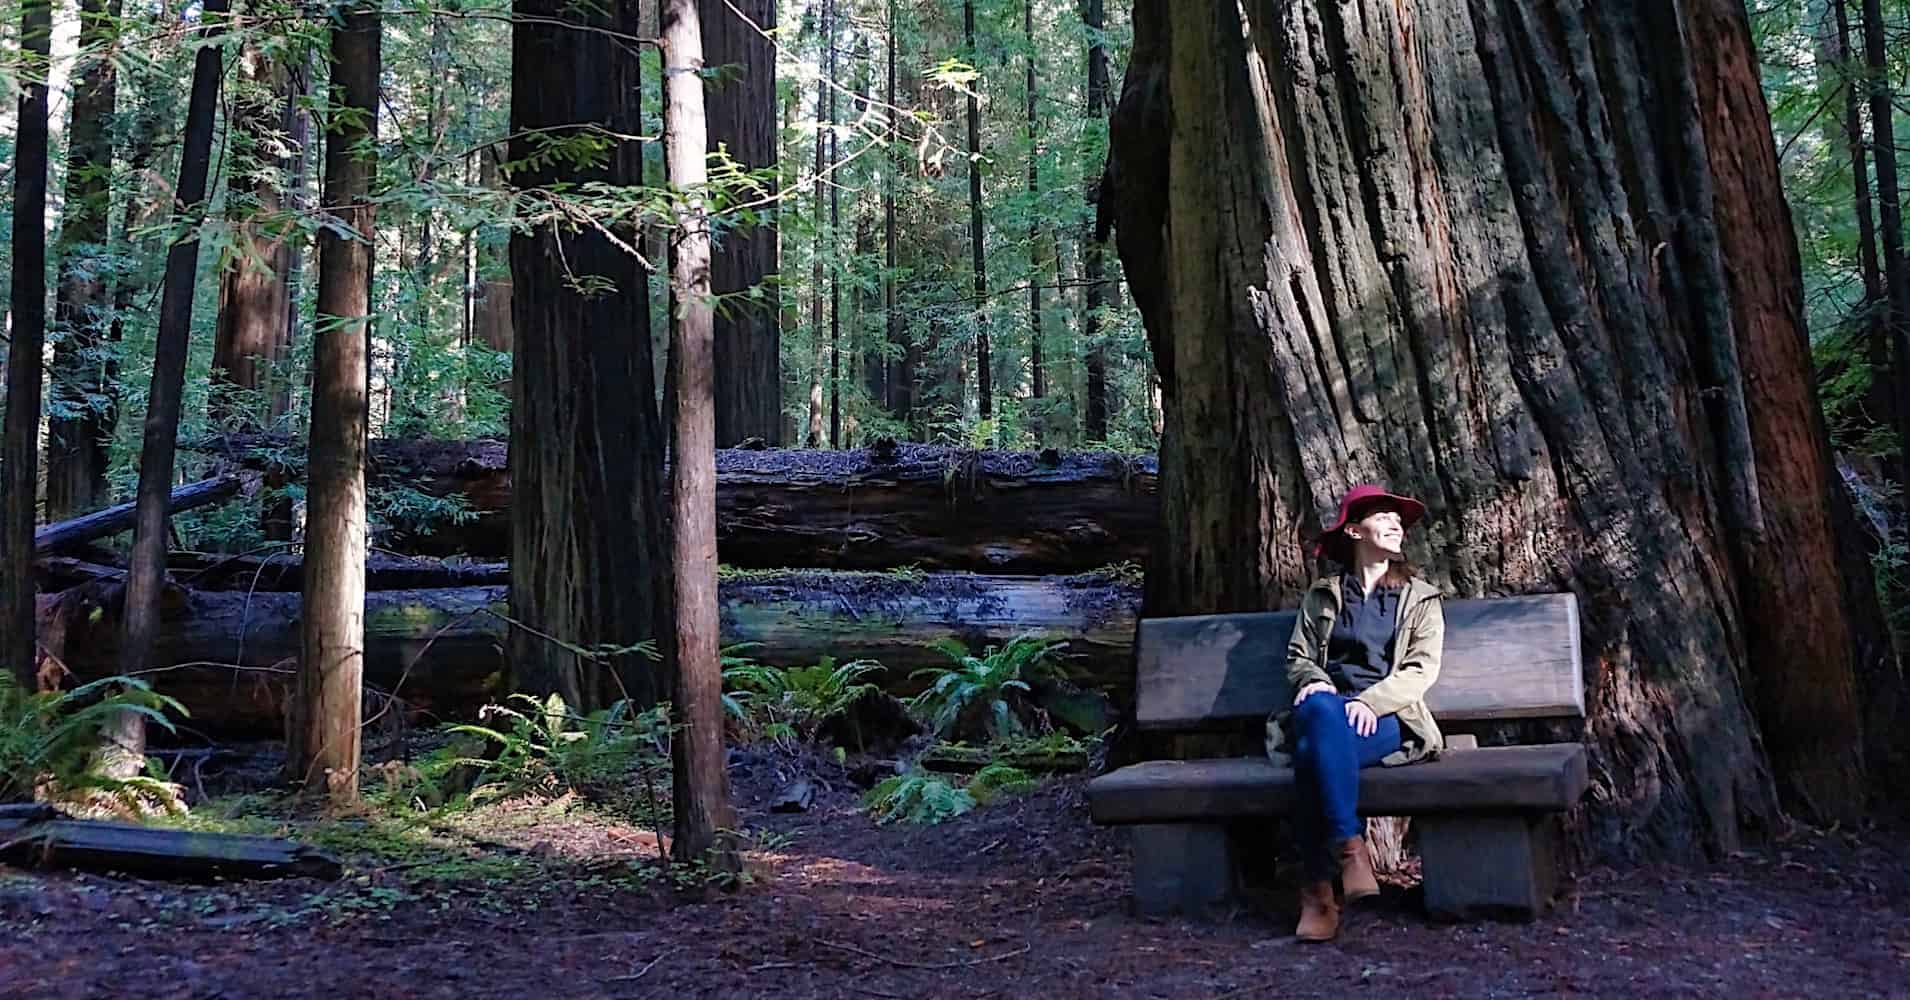 Sensational The 3 Best Places To See The Redwoods Near San Francisco Cjindustries Chair Design For Home Cjindustriesco